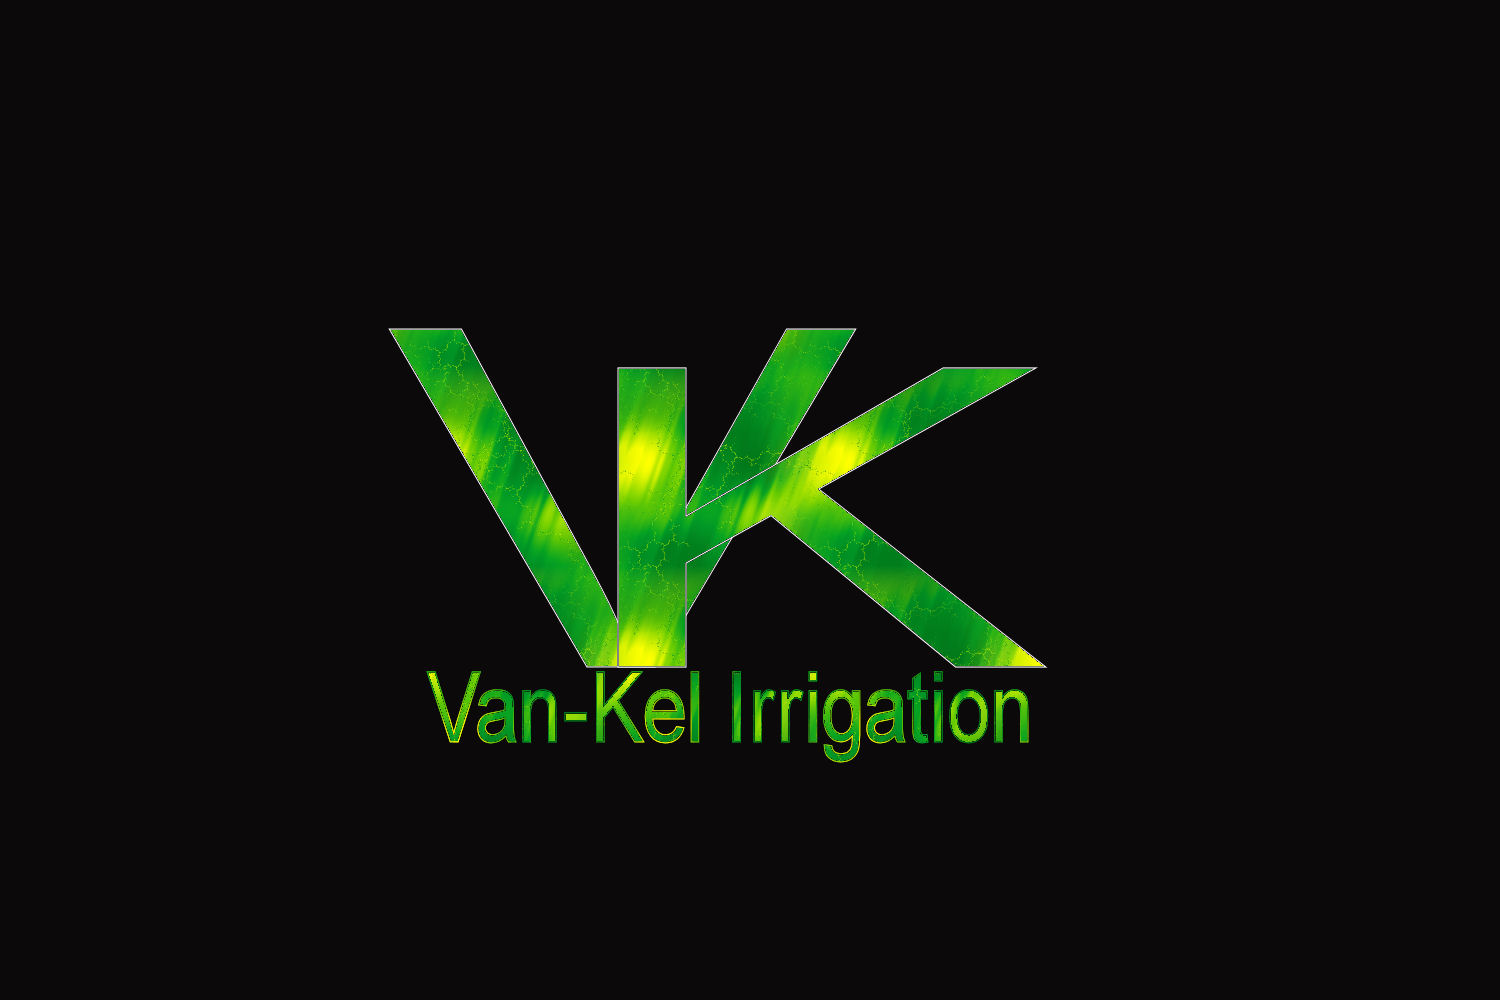 Logo Design by Jamie Reichert - Entry No. 31 in the Logo Design Contest Van-Kel Irrigation Logo Design.